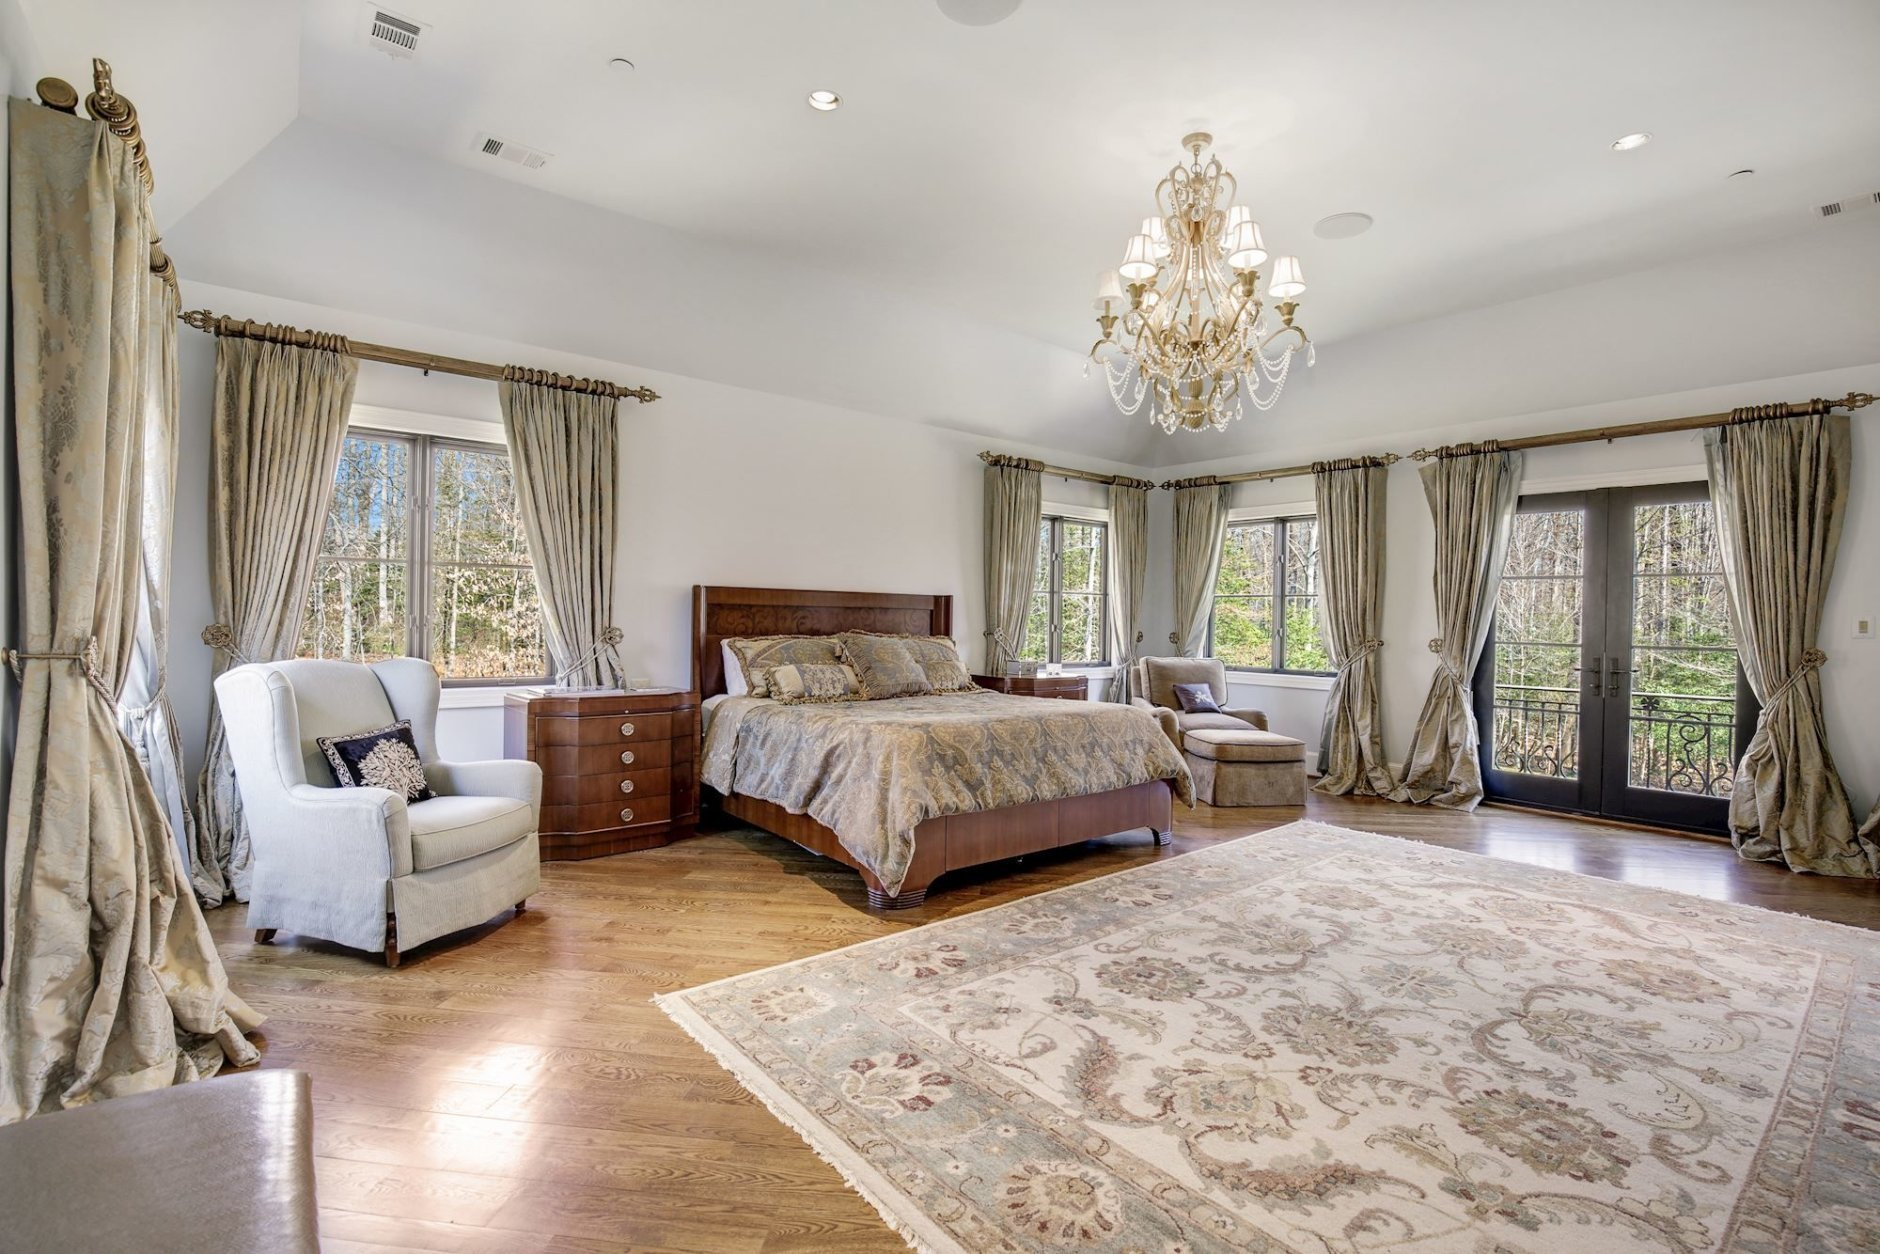 There's plenty of space in the bedrooms. (Courtesy Washington Fine Properties)